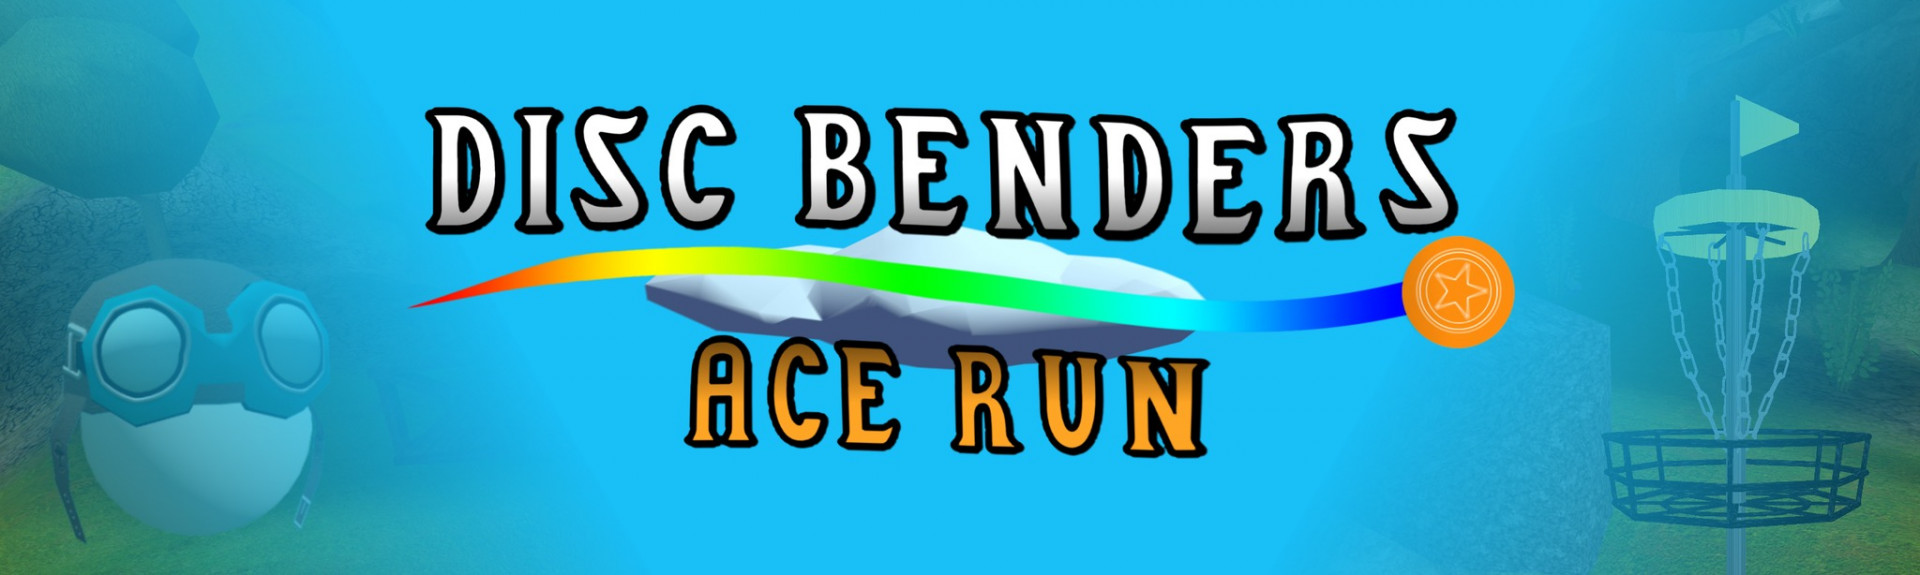 Disc Benders: Ace Run